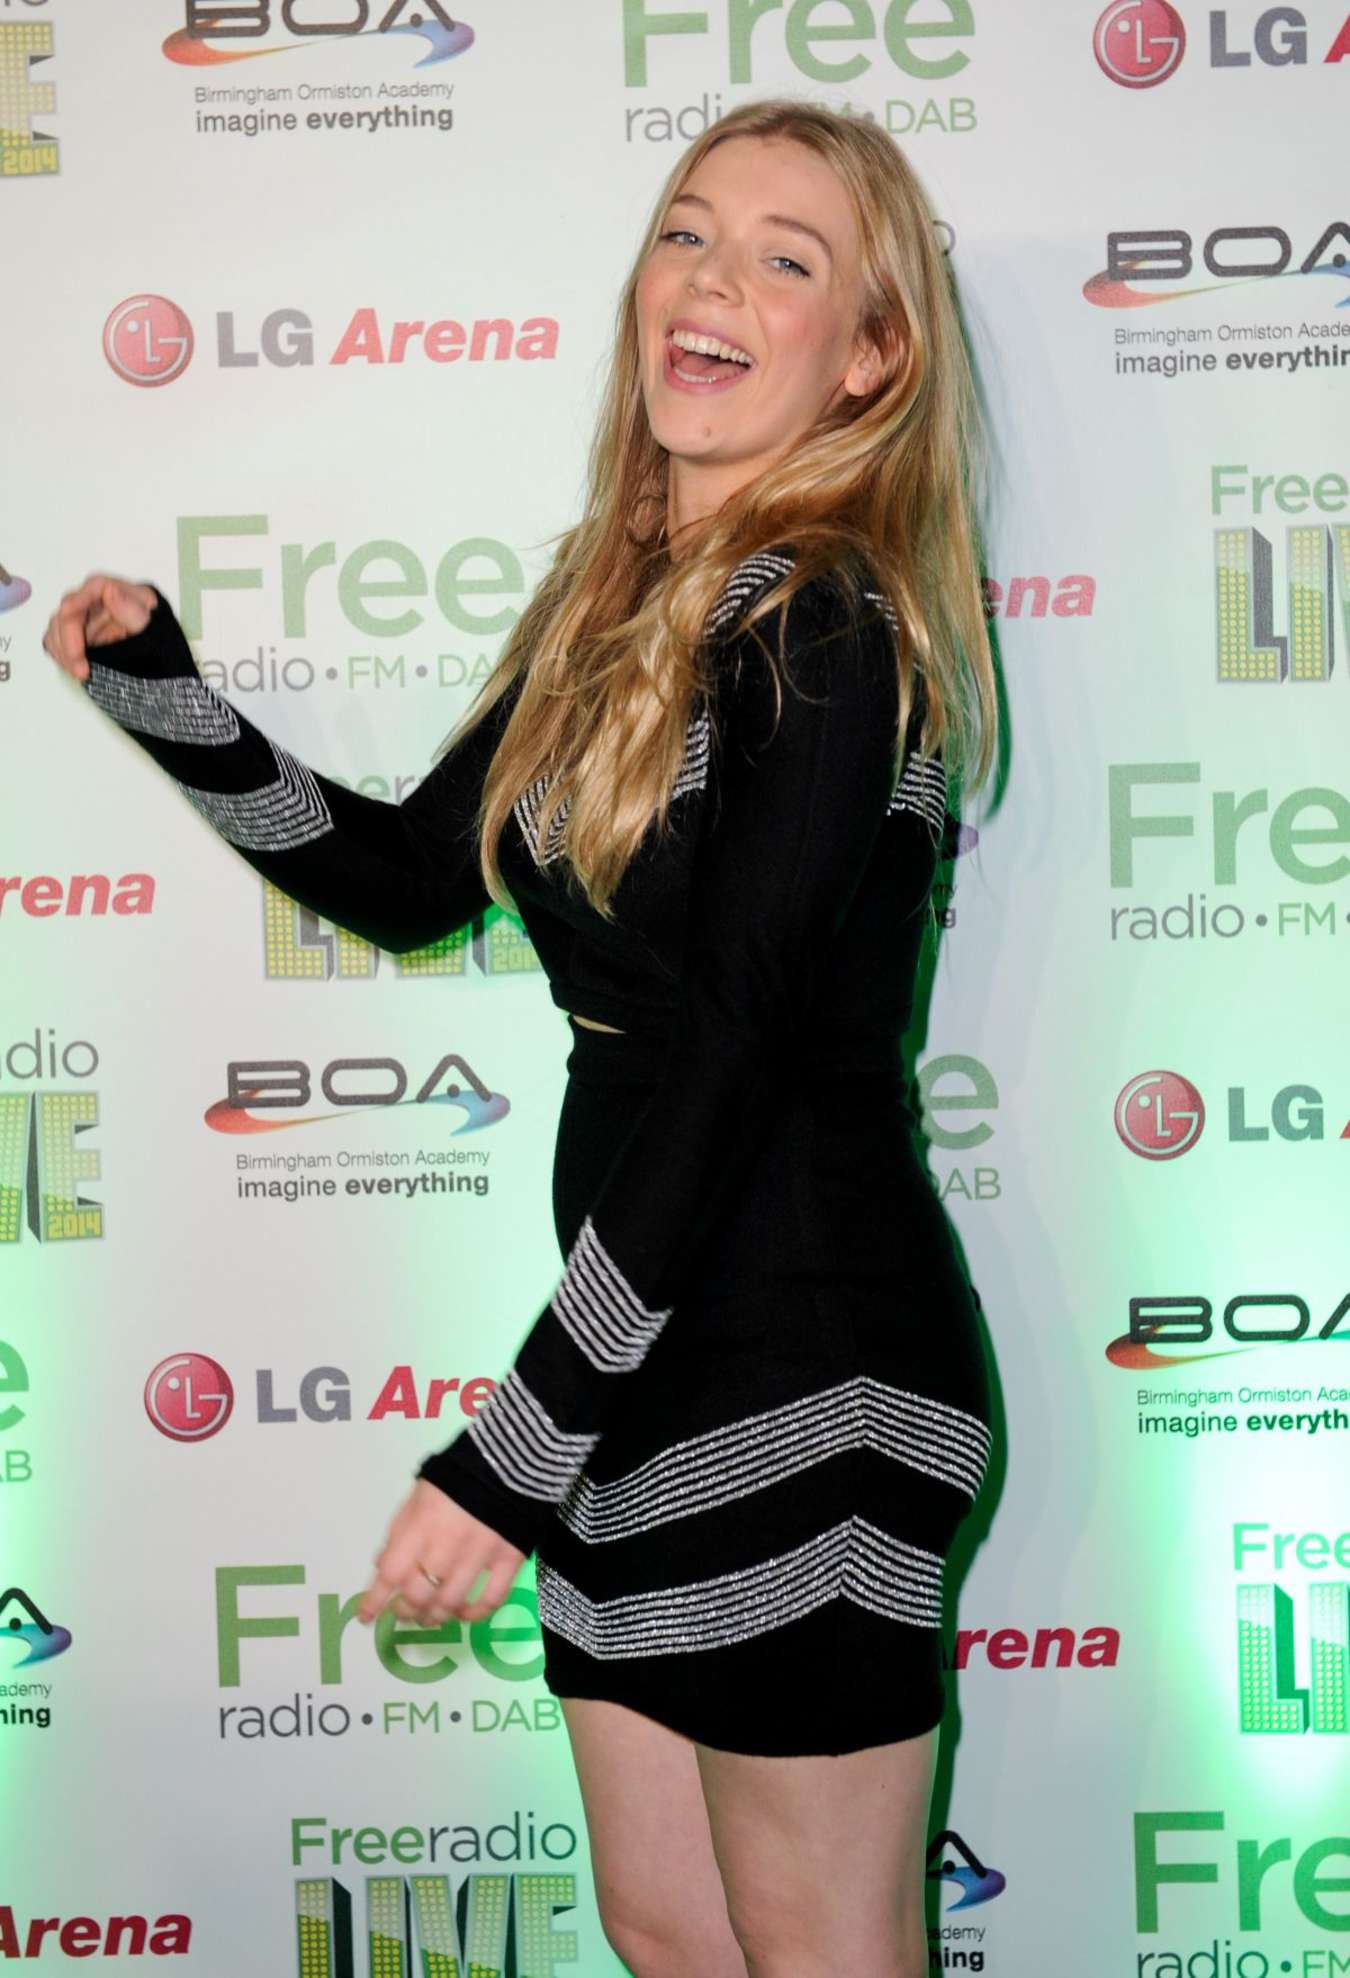 Becky Hill Performs at Free Radio Live in Birmingham